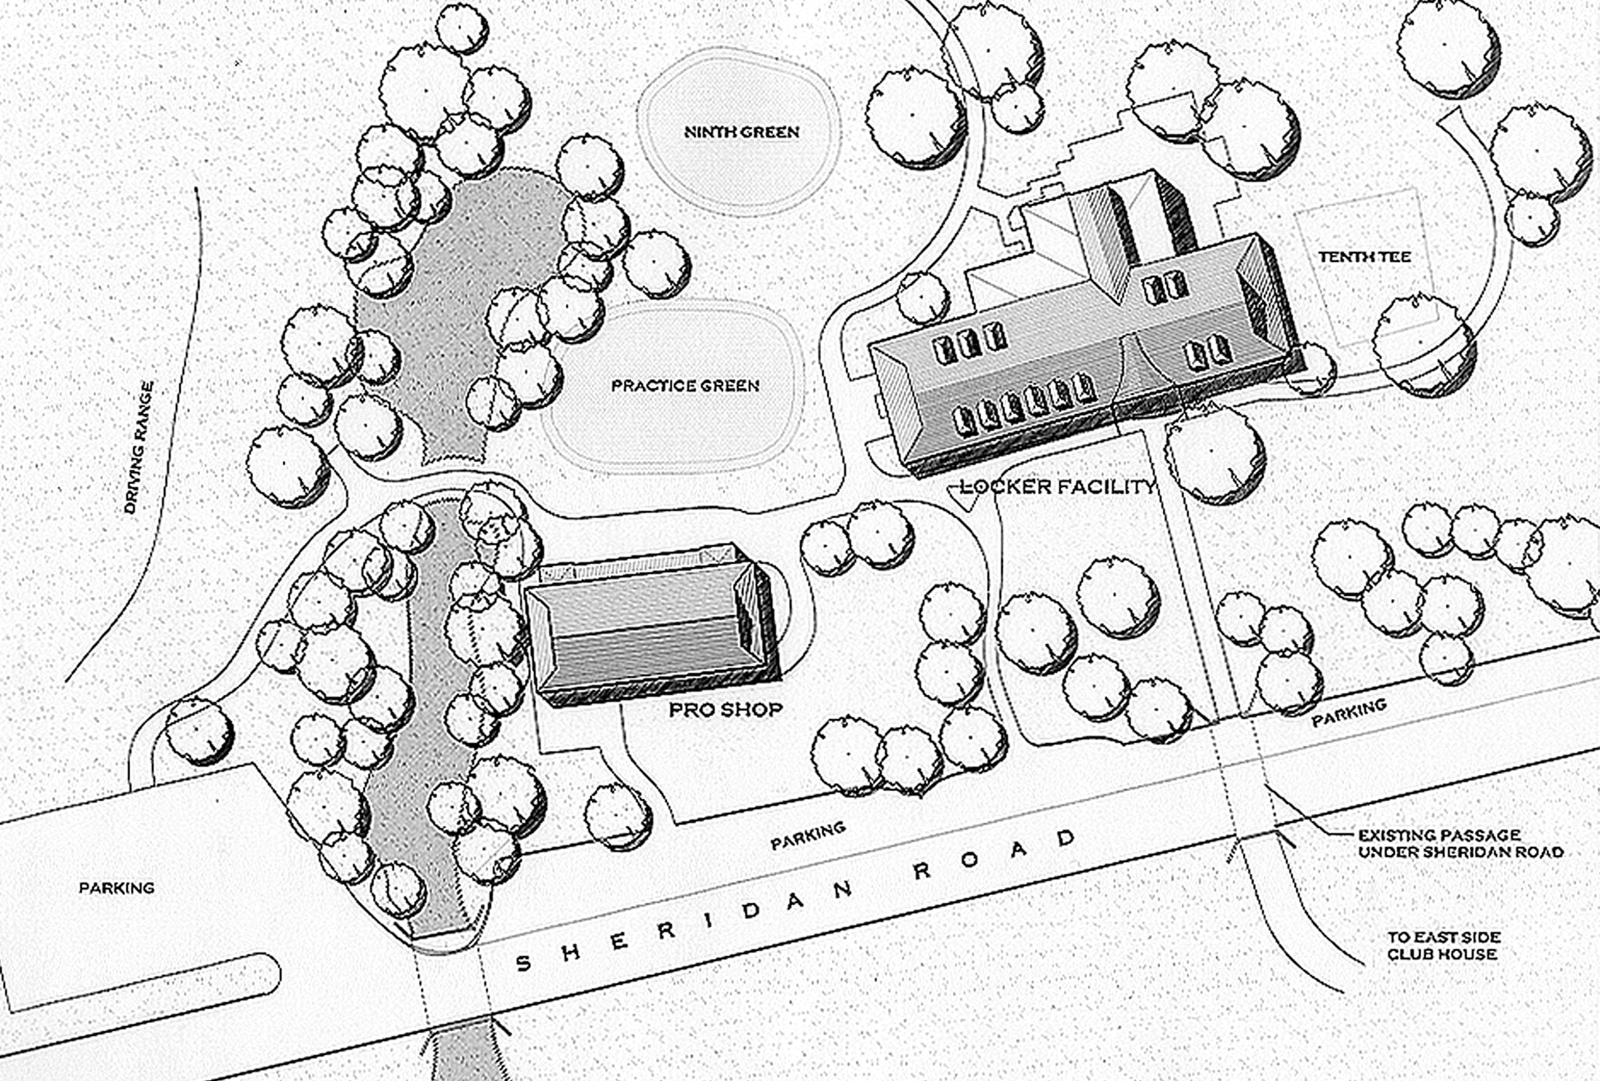 LSCC site plan-sharp